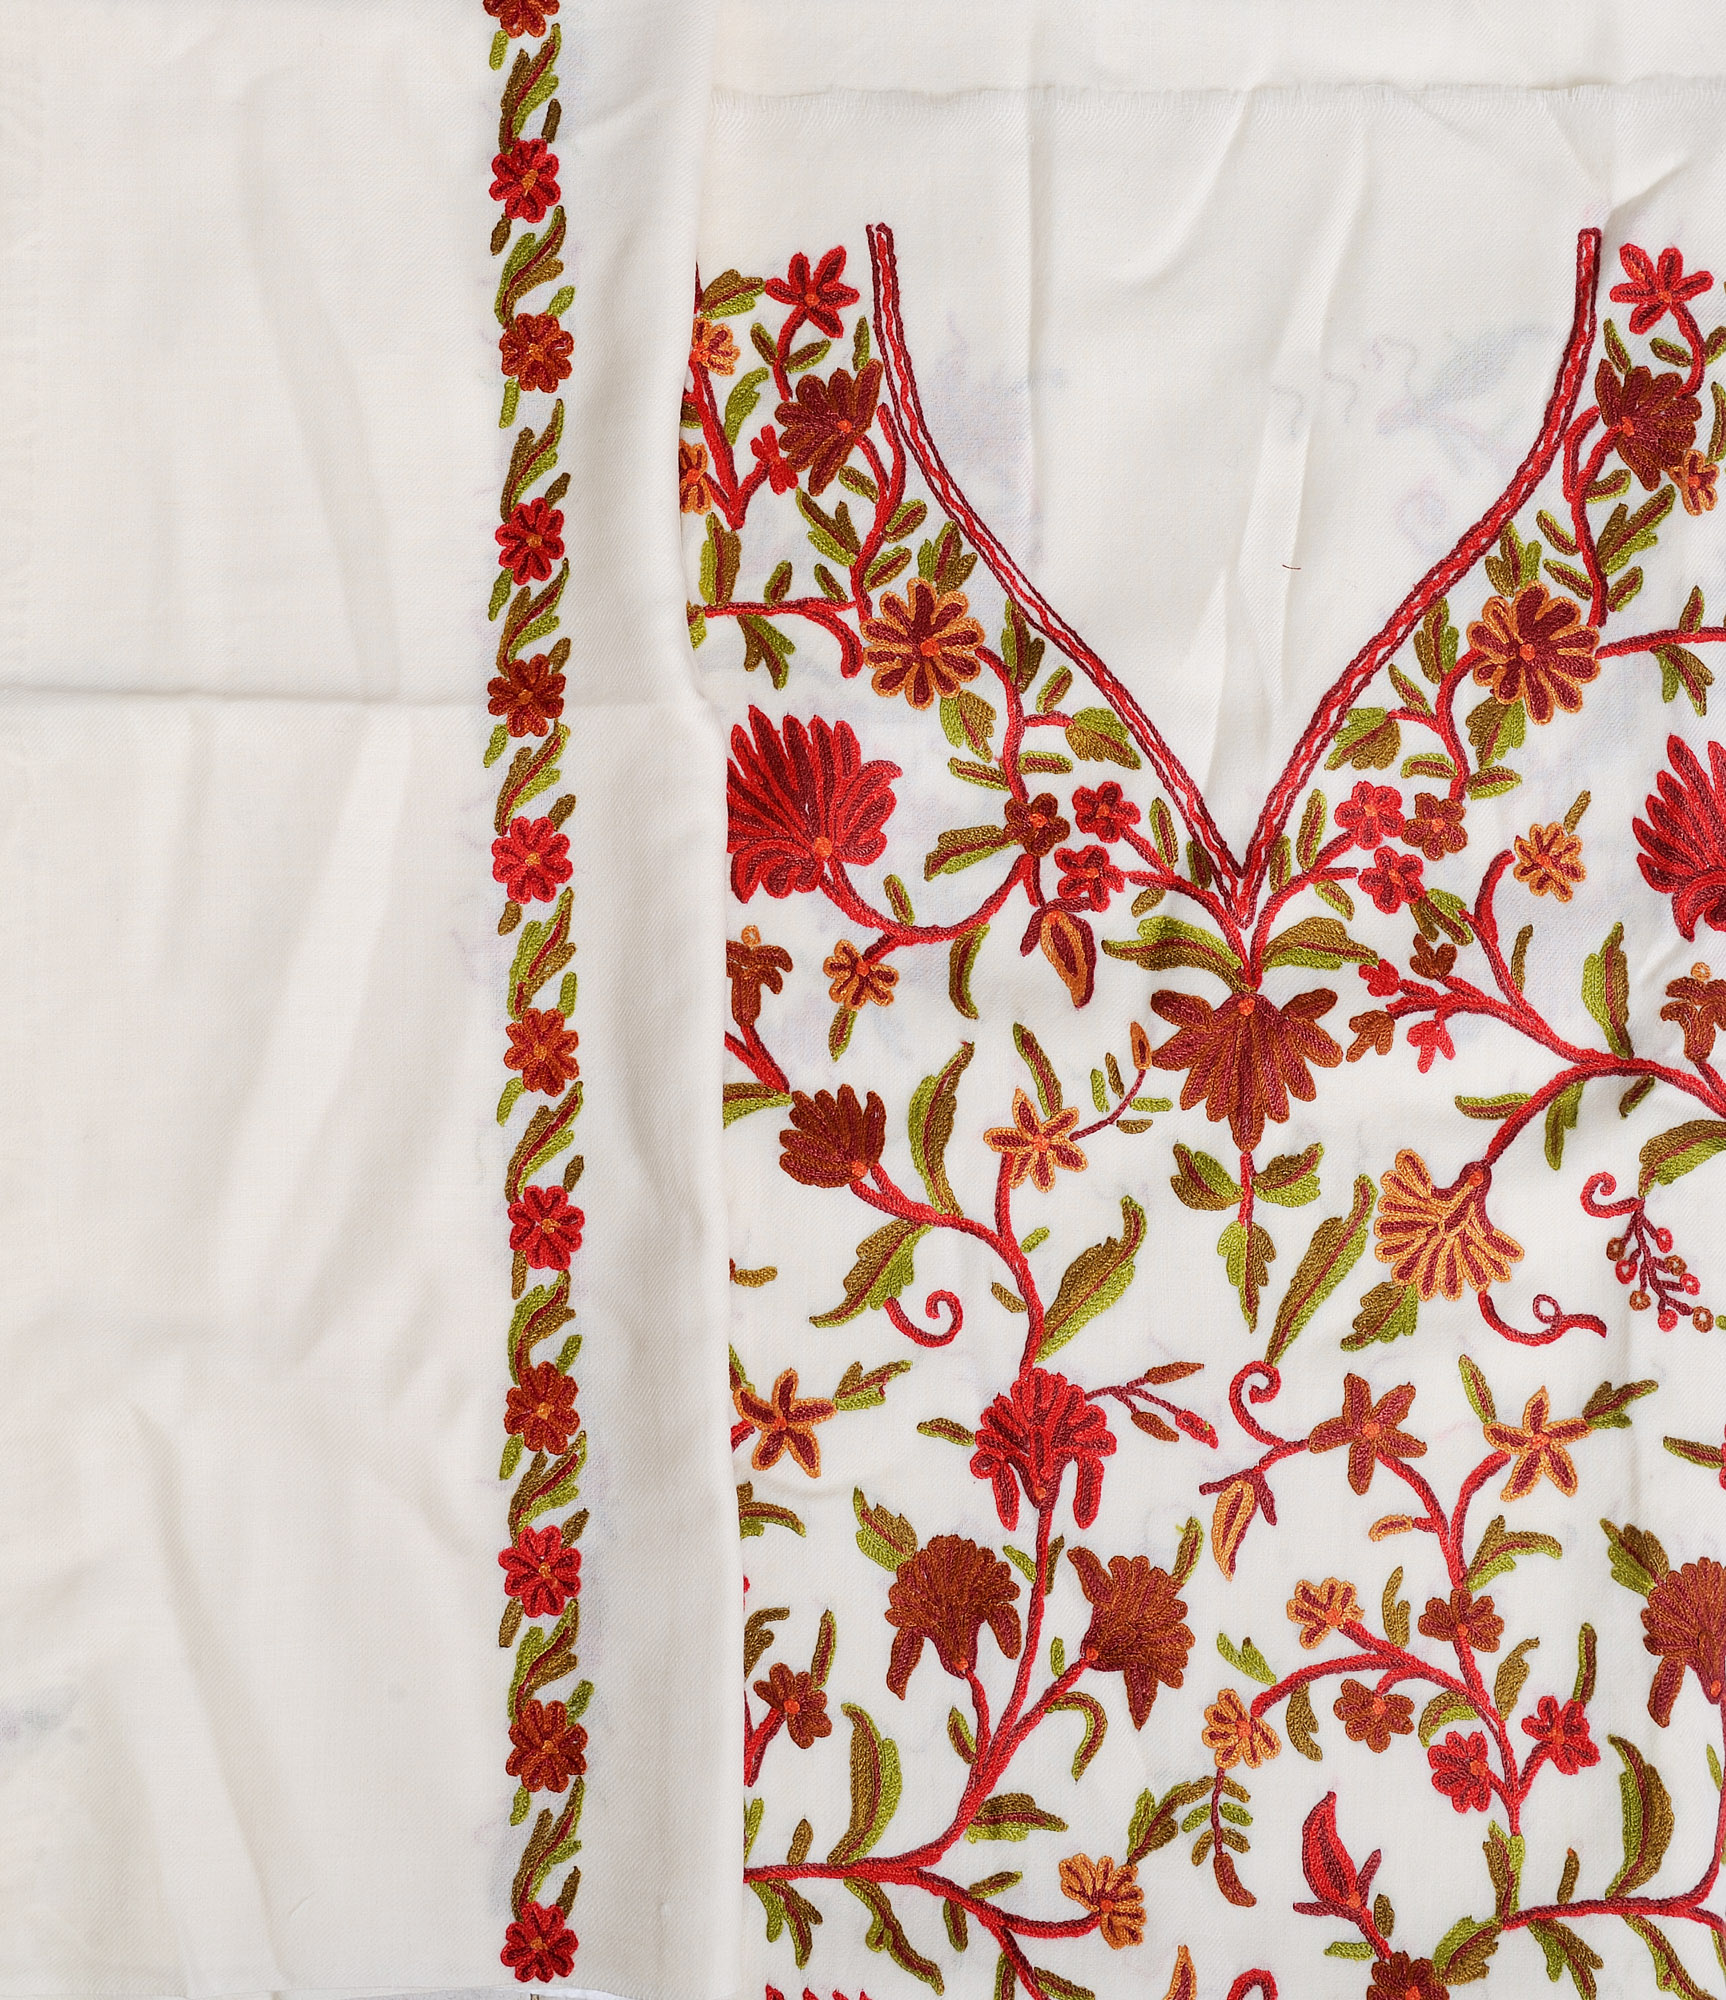 Ivory kashmiri sawar kameez fabric with hand embroidered